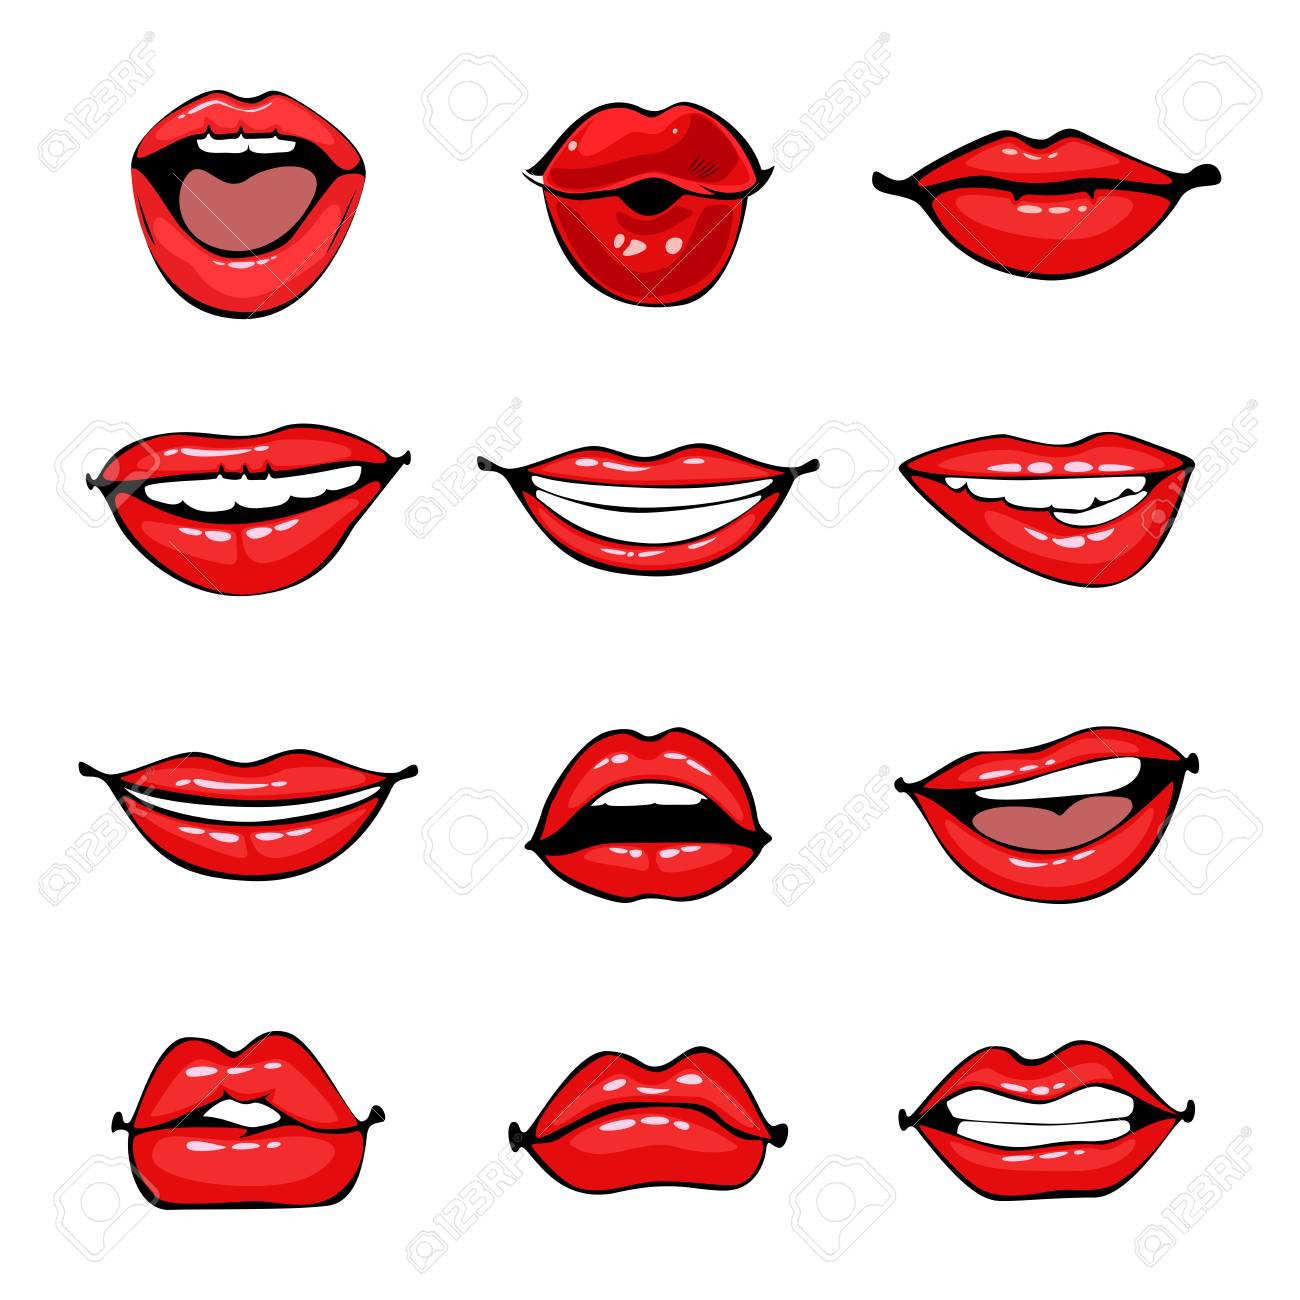 Comic Female Lips Set Smile Angry Kiss Flirt Open And Close Royalty Free Cliparts Vectors And Stock Illustration Image 95687458